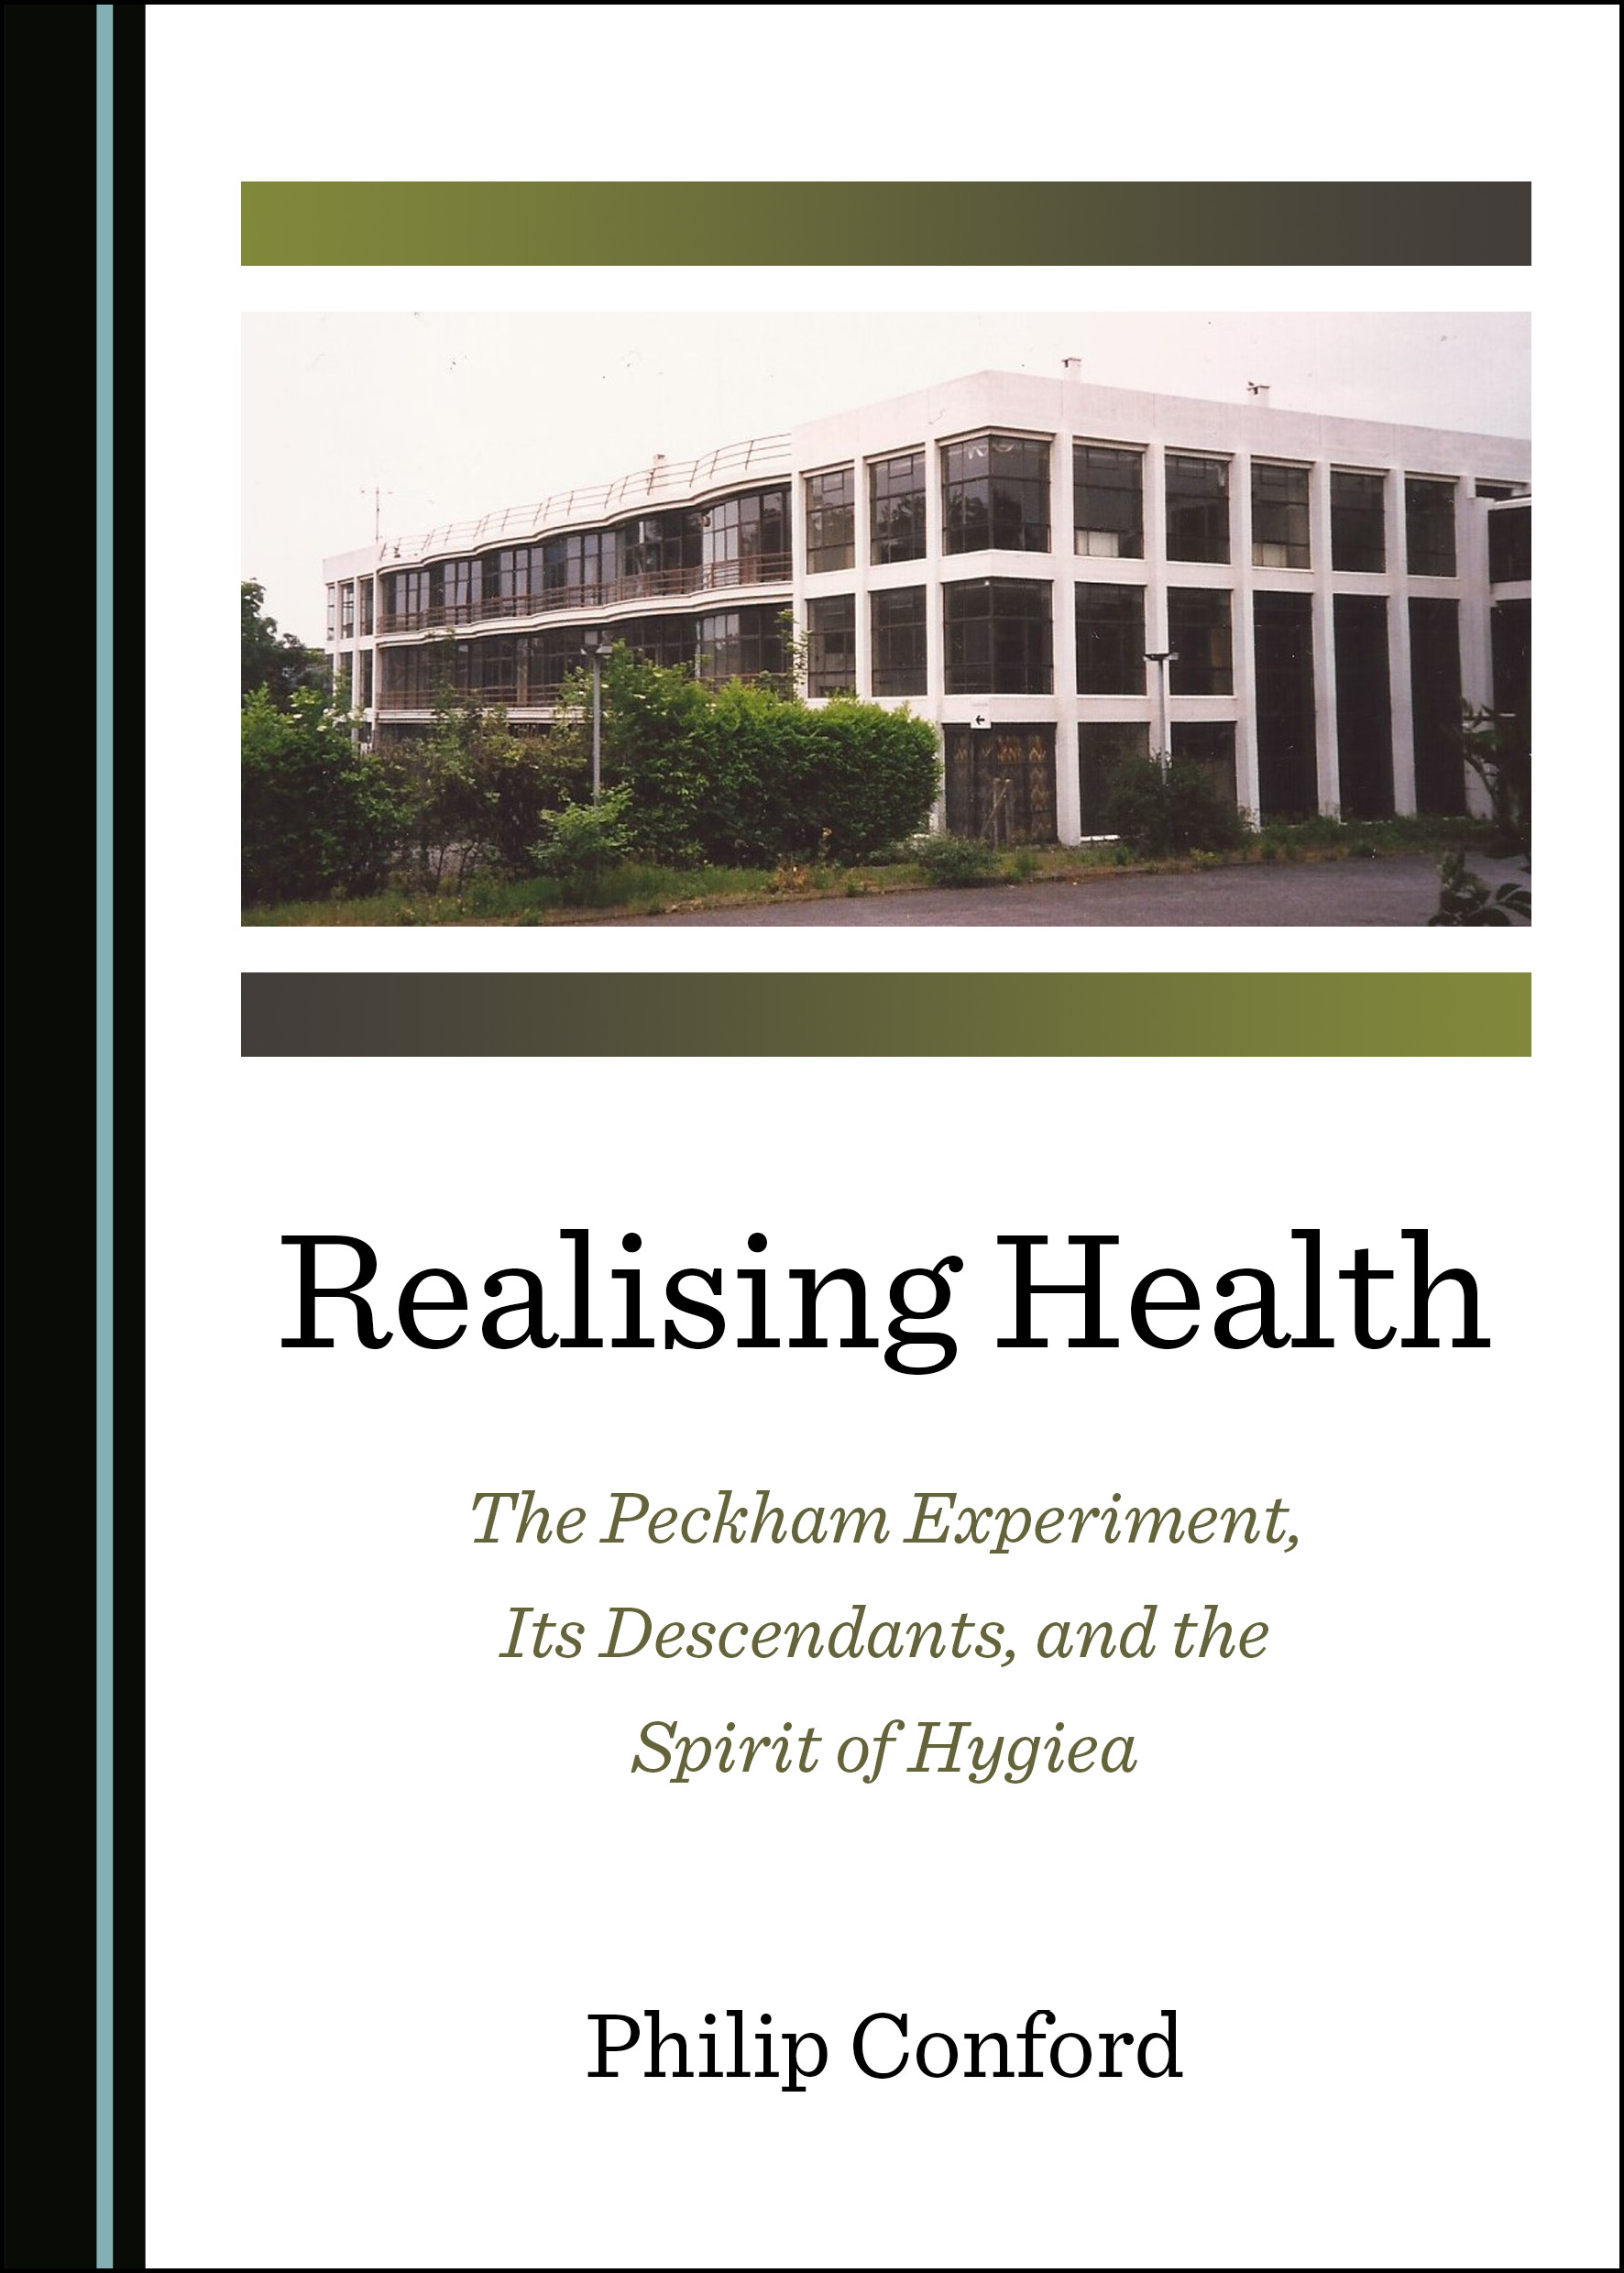 Realising Health: The Peckham Experiment, Its Descendants, and the Spirit of Hygiea